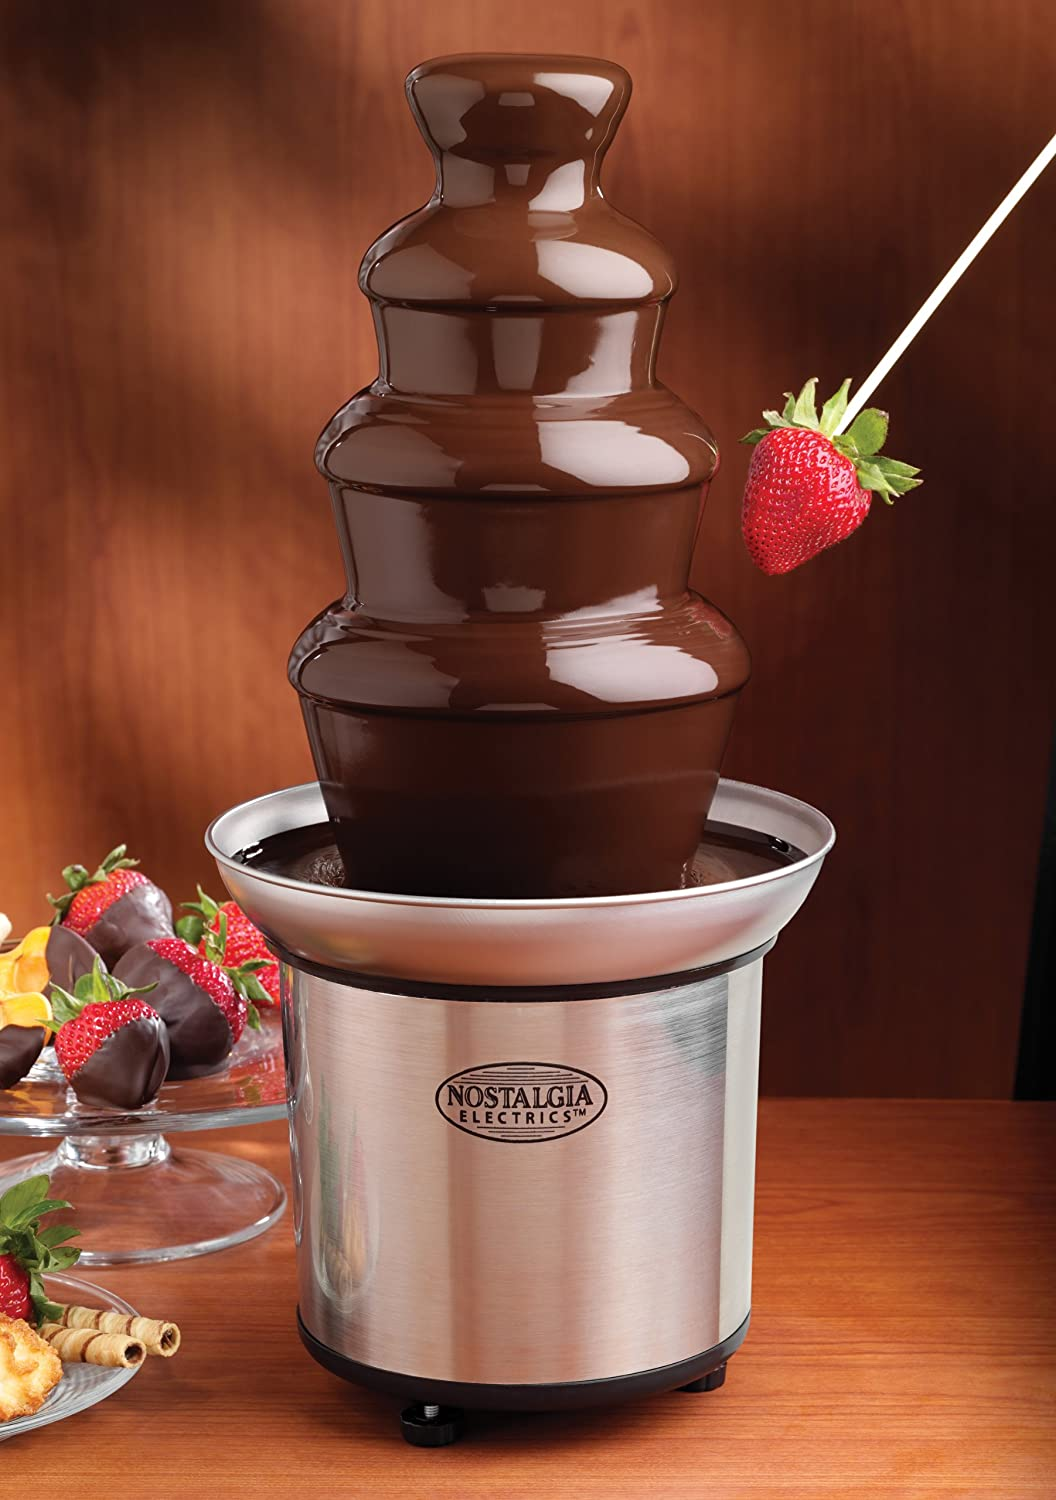 best valentine's gift ideas on a budget is a 35 dollar chocolate fondue fountain